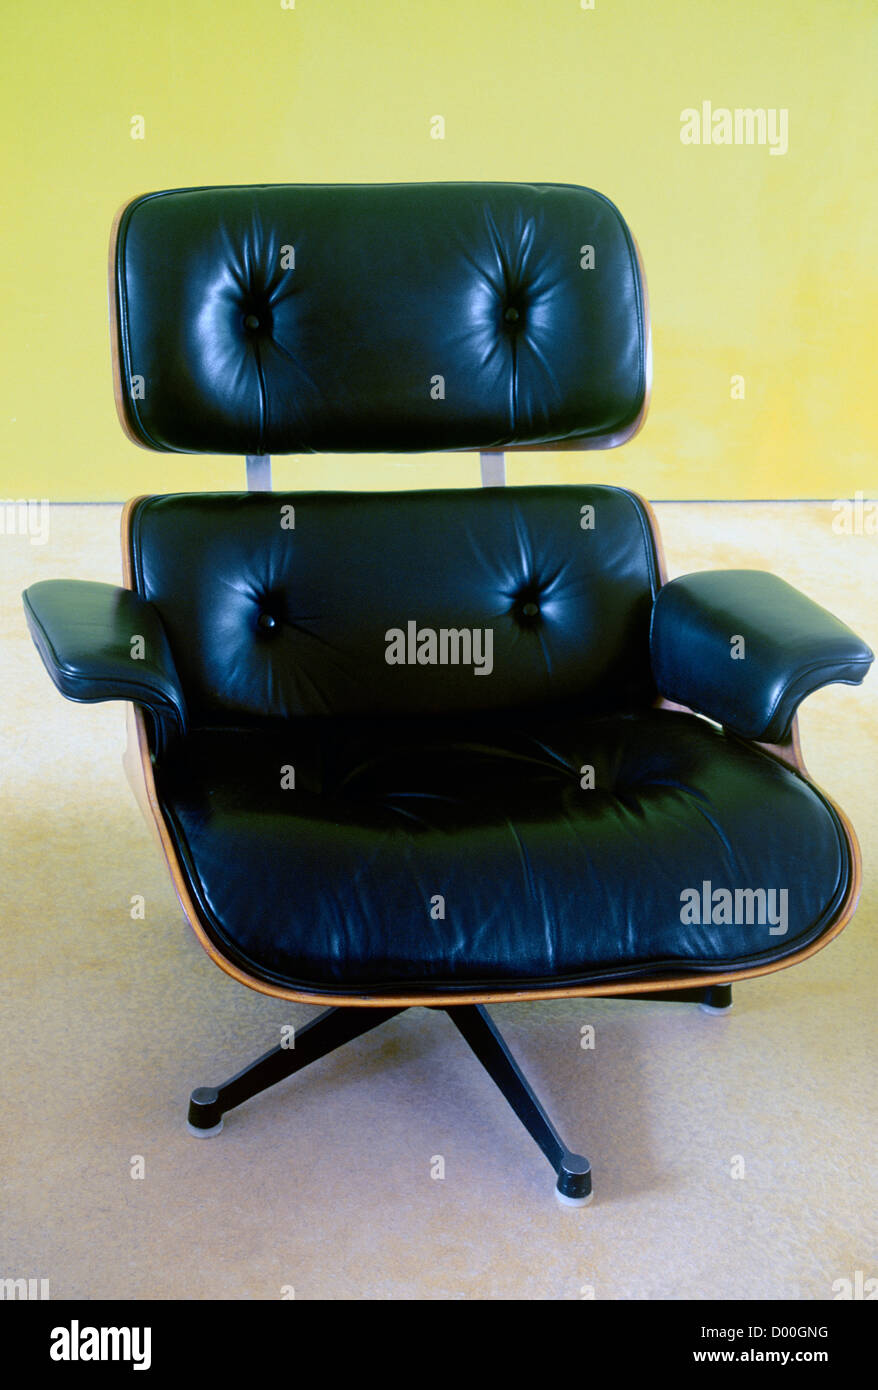 Eames High Resolution Stock Photography And Images Alamy